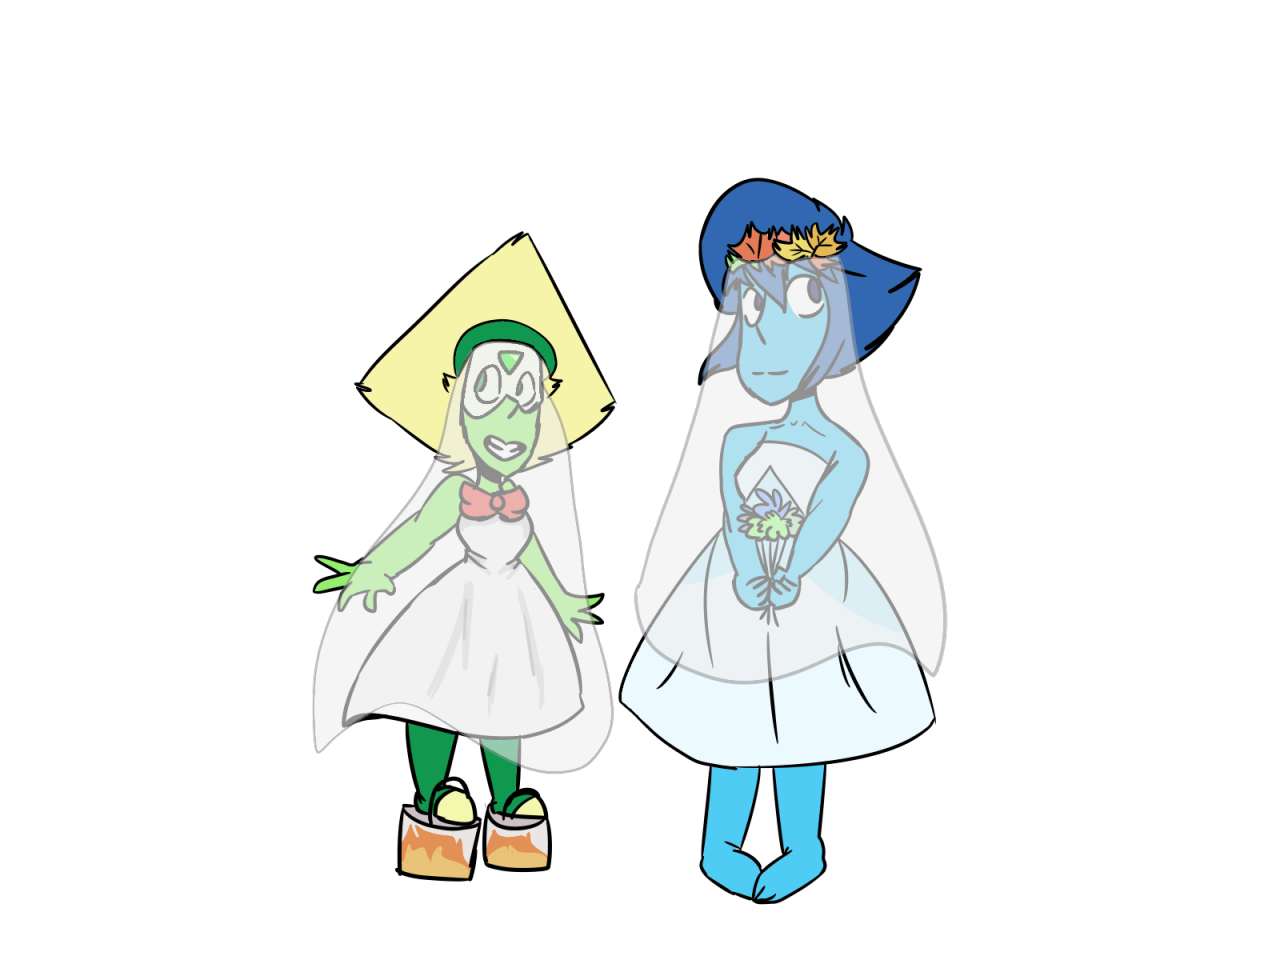 That moment in gem harvest kind of sparked a little idea and yeah. here's this